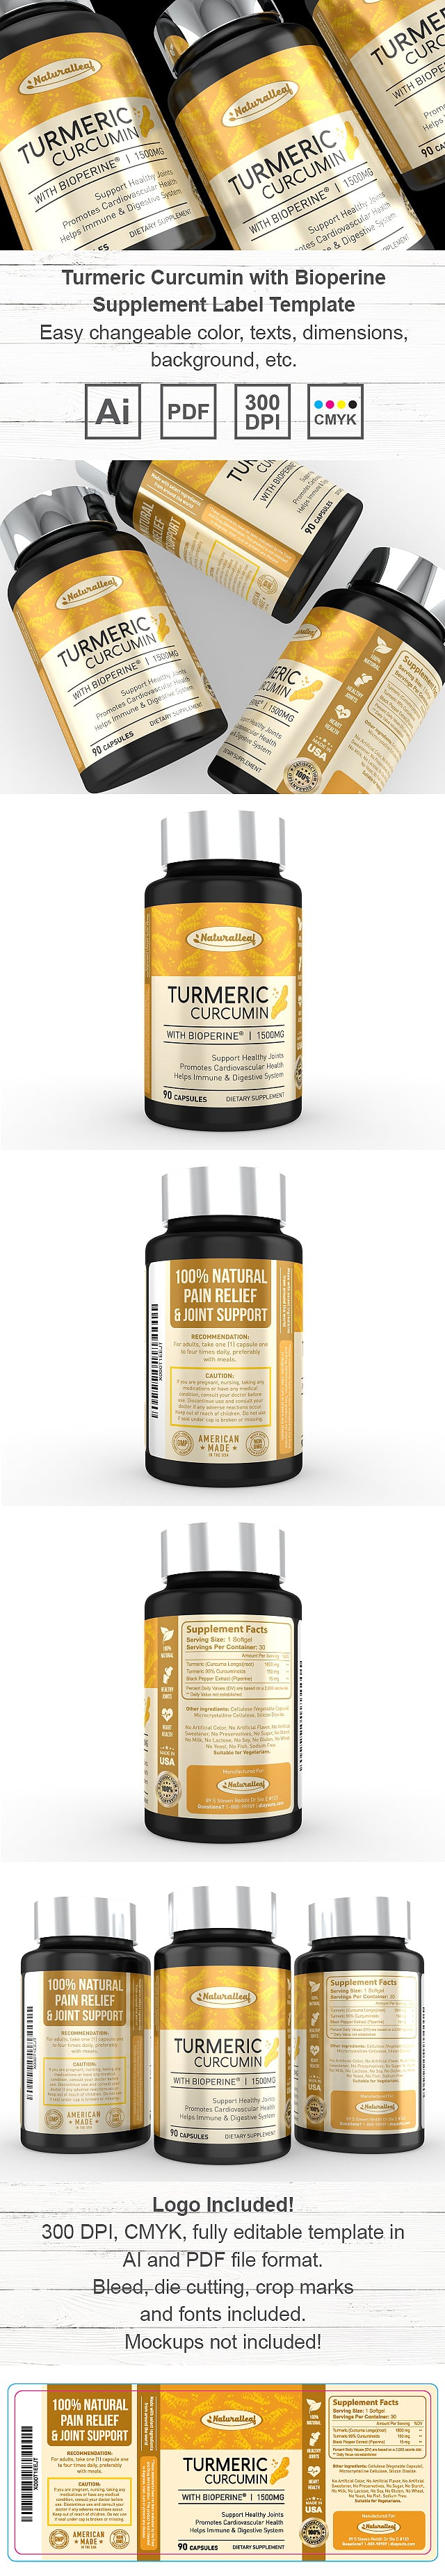 Turmeric Curcumin with Bioperine Supplement Label Template